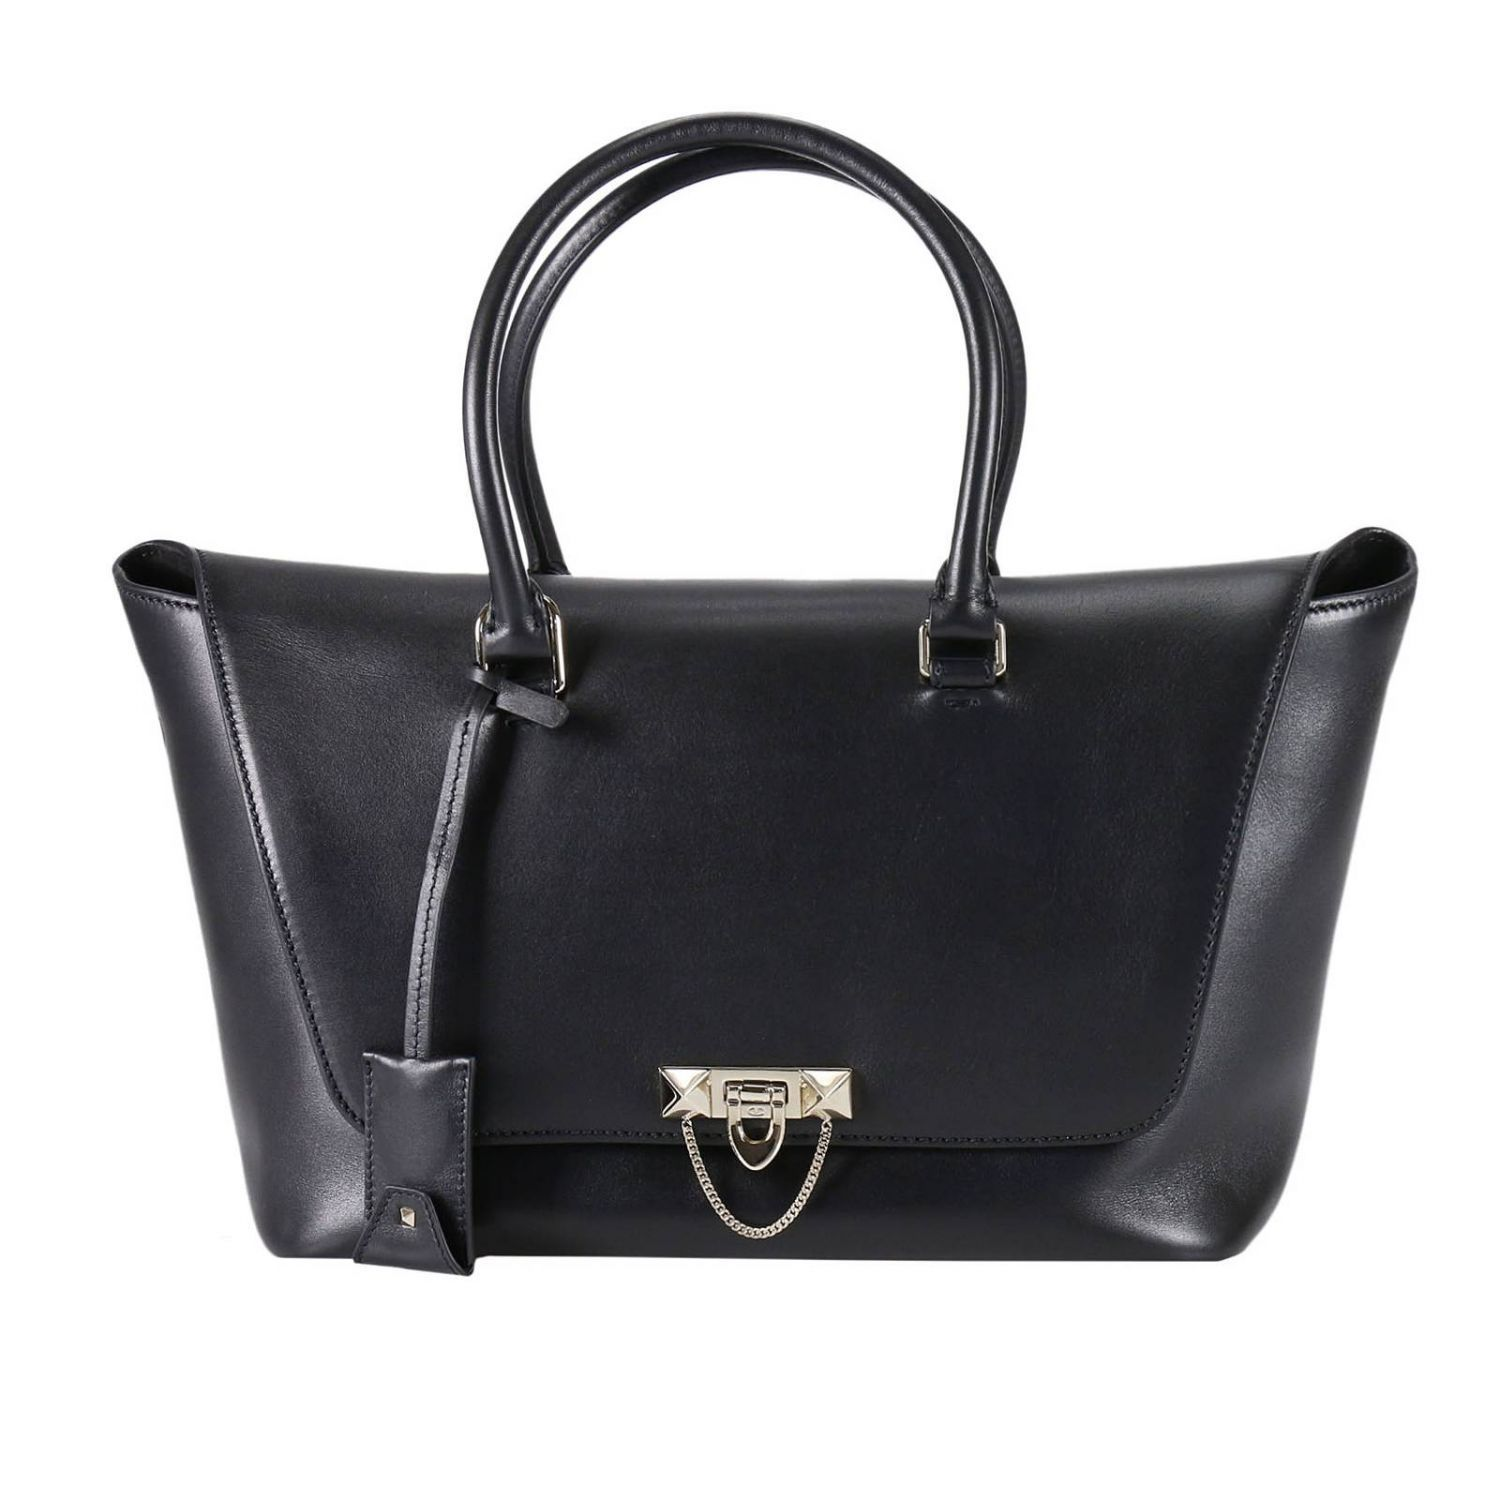 Handbag Shoulder Bag Women Valentino Garavani